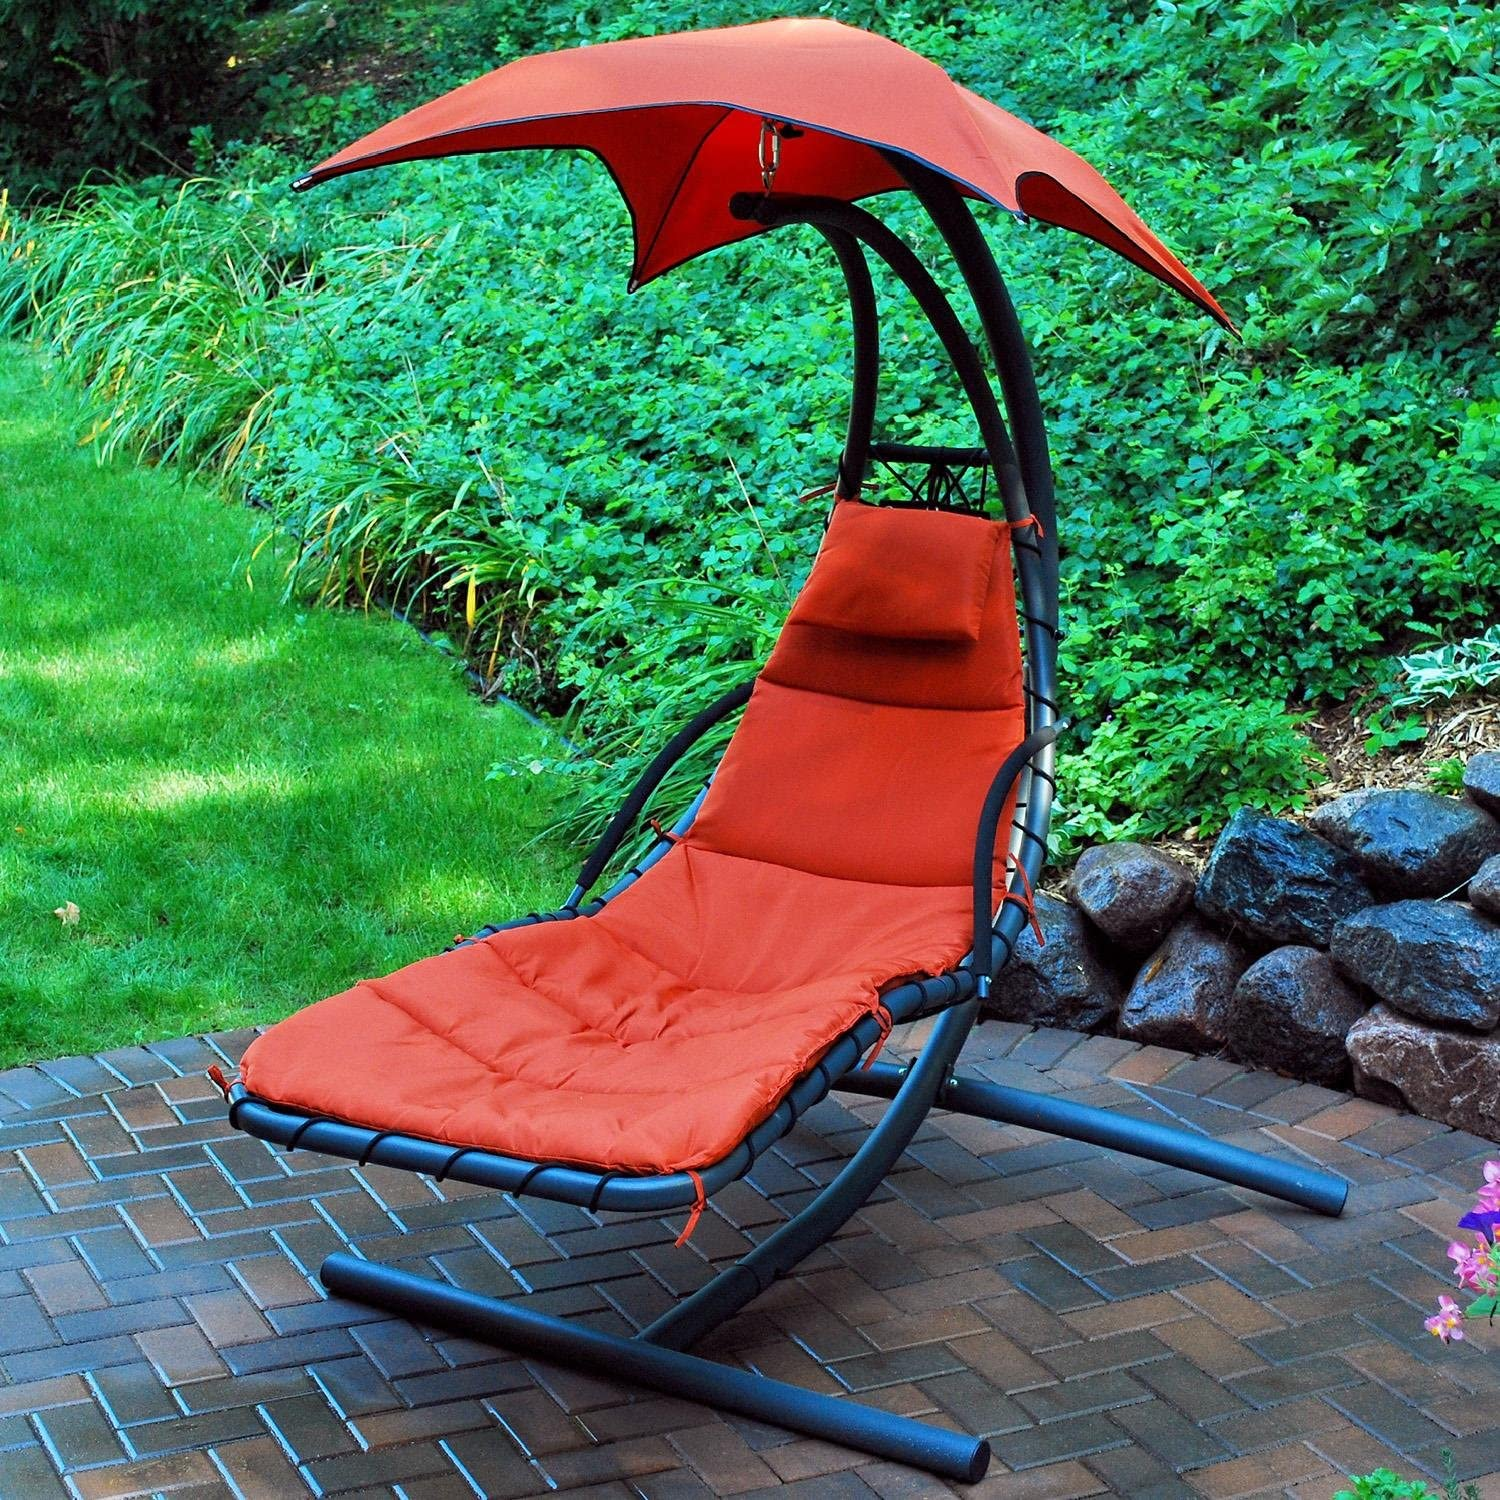 Algoma Cloud9 hanging chaise lounger